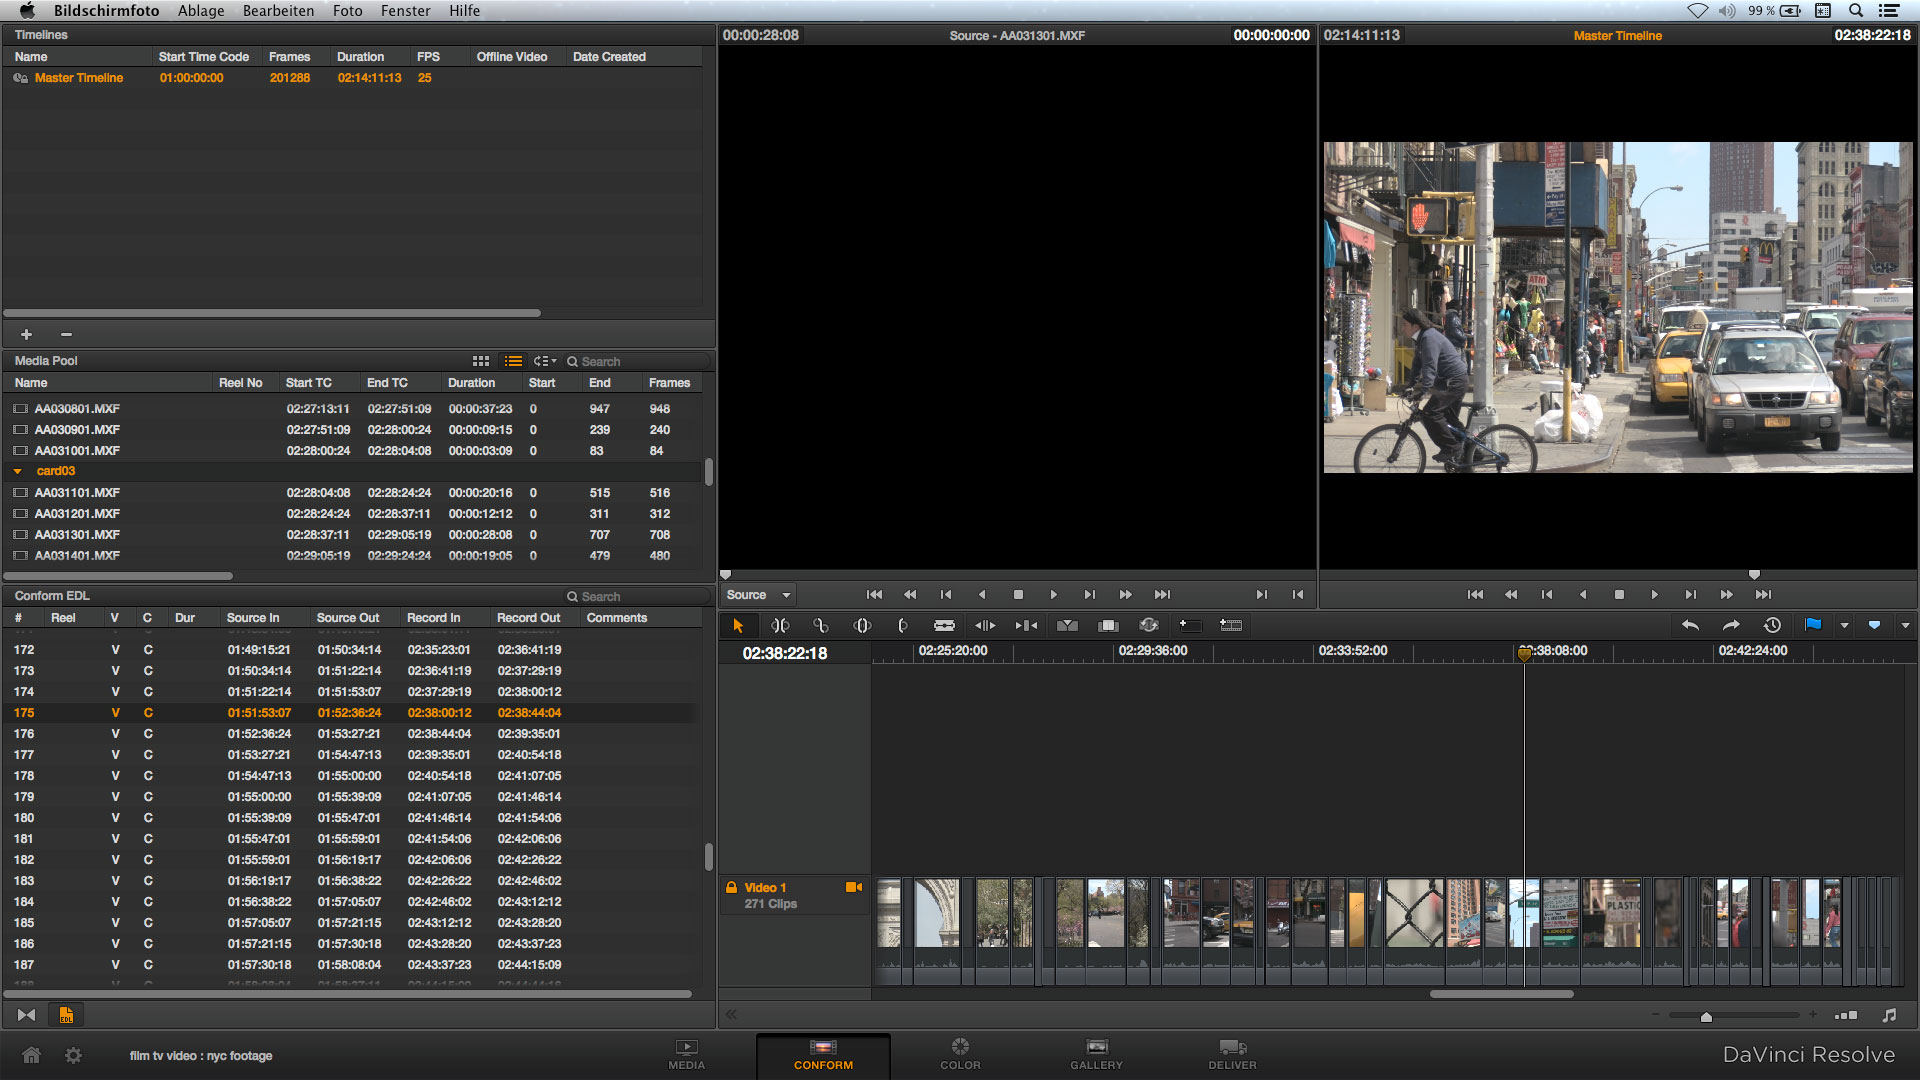 B_1112_Resolve9_06_Conform_dailies_mastertimeline